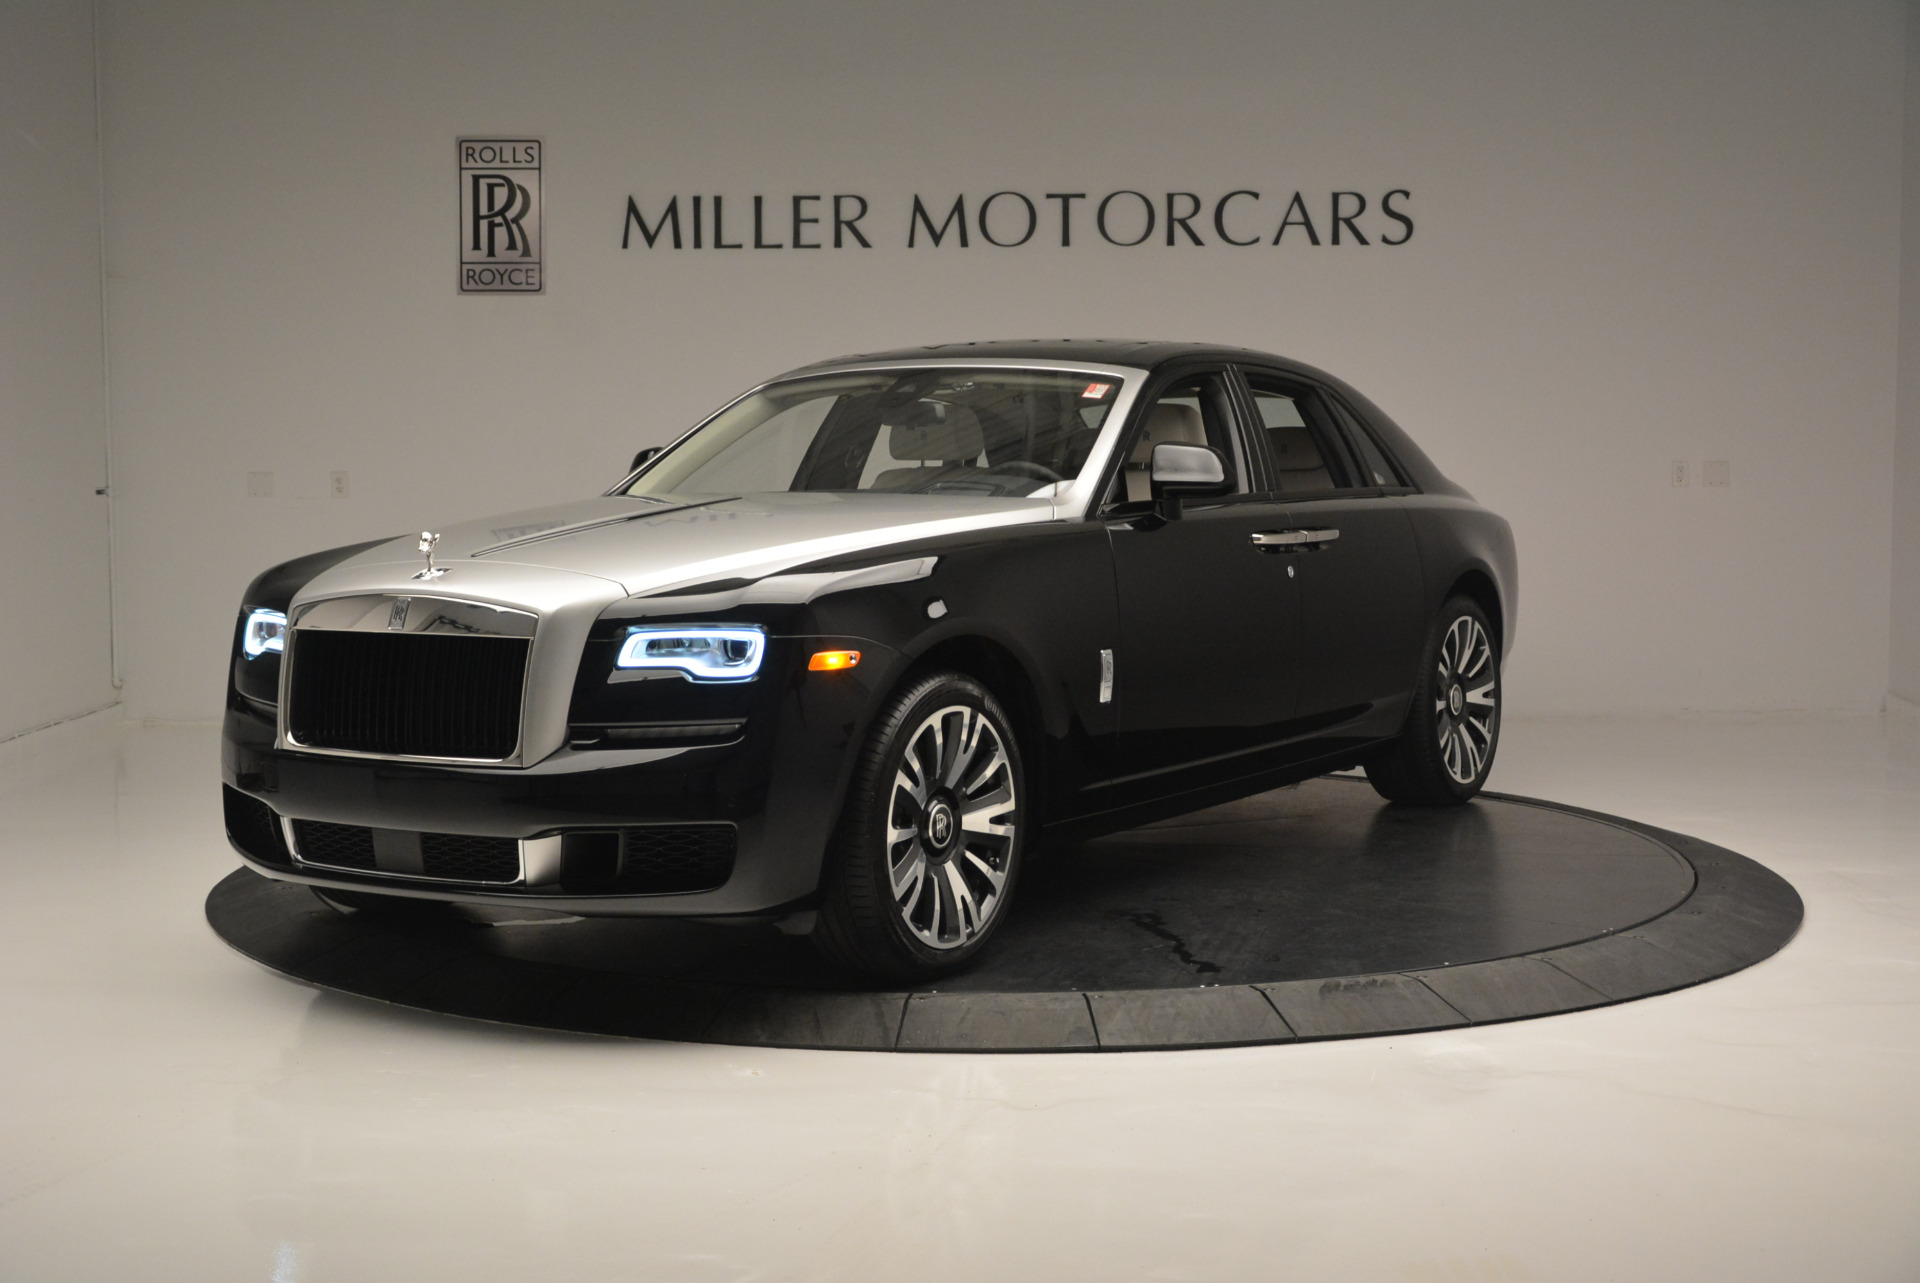 New 2019 Rolls-Royce Ghost for sale Sold at Bentley Greenwich in Greenwich CT 06830 1